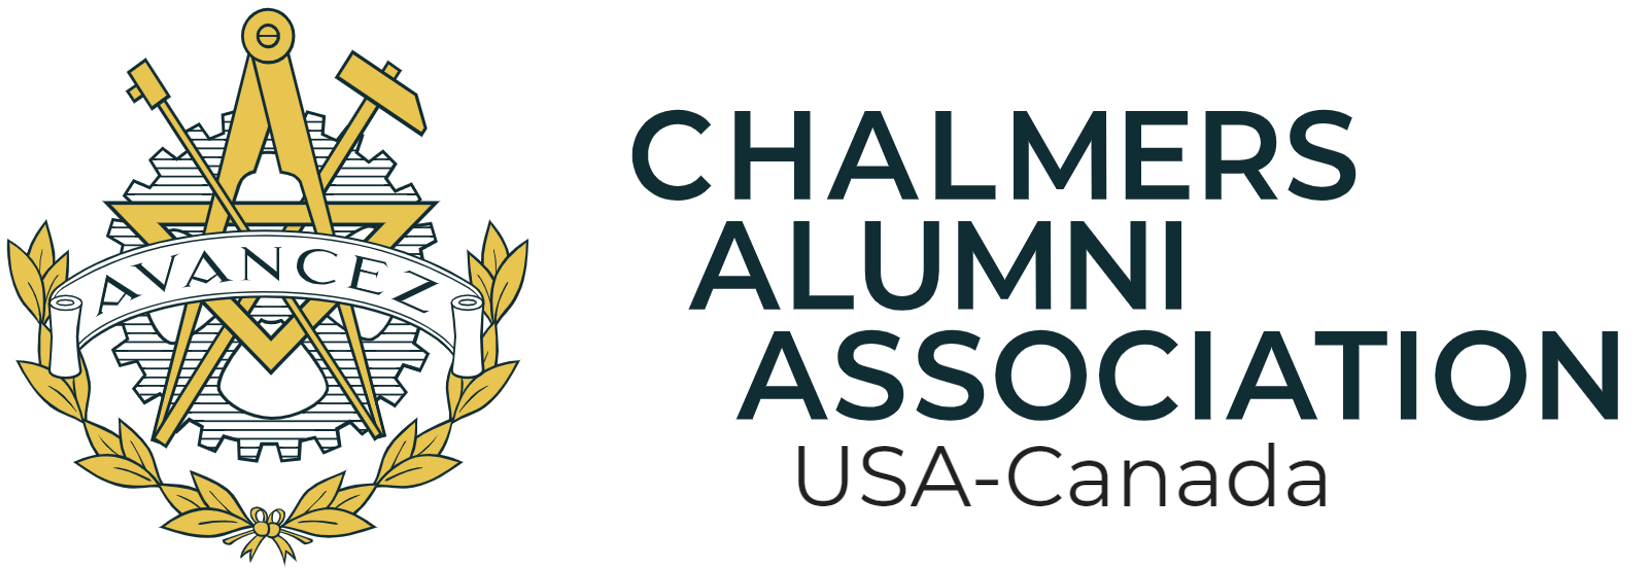 Chalmers Alumni Association of US Canada